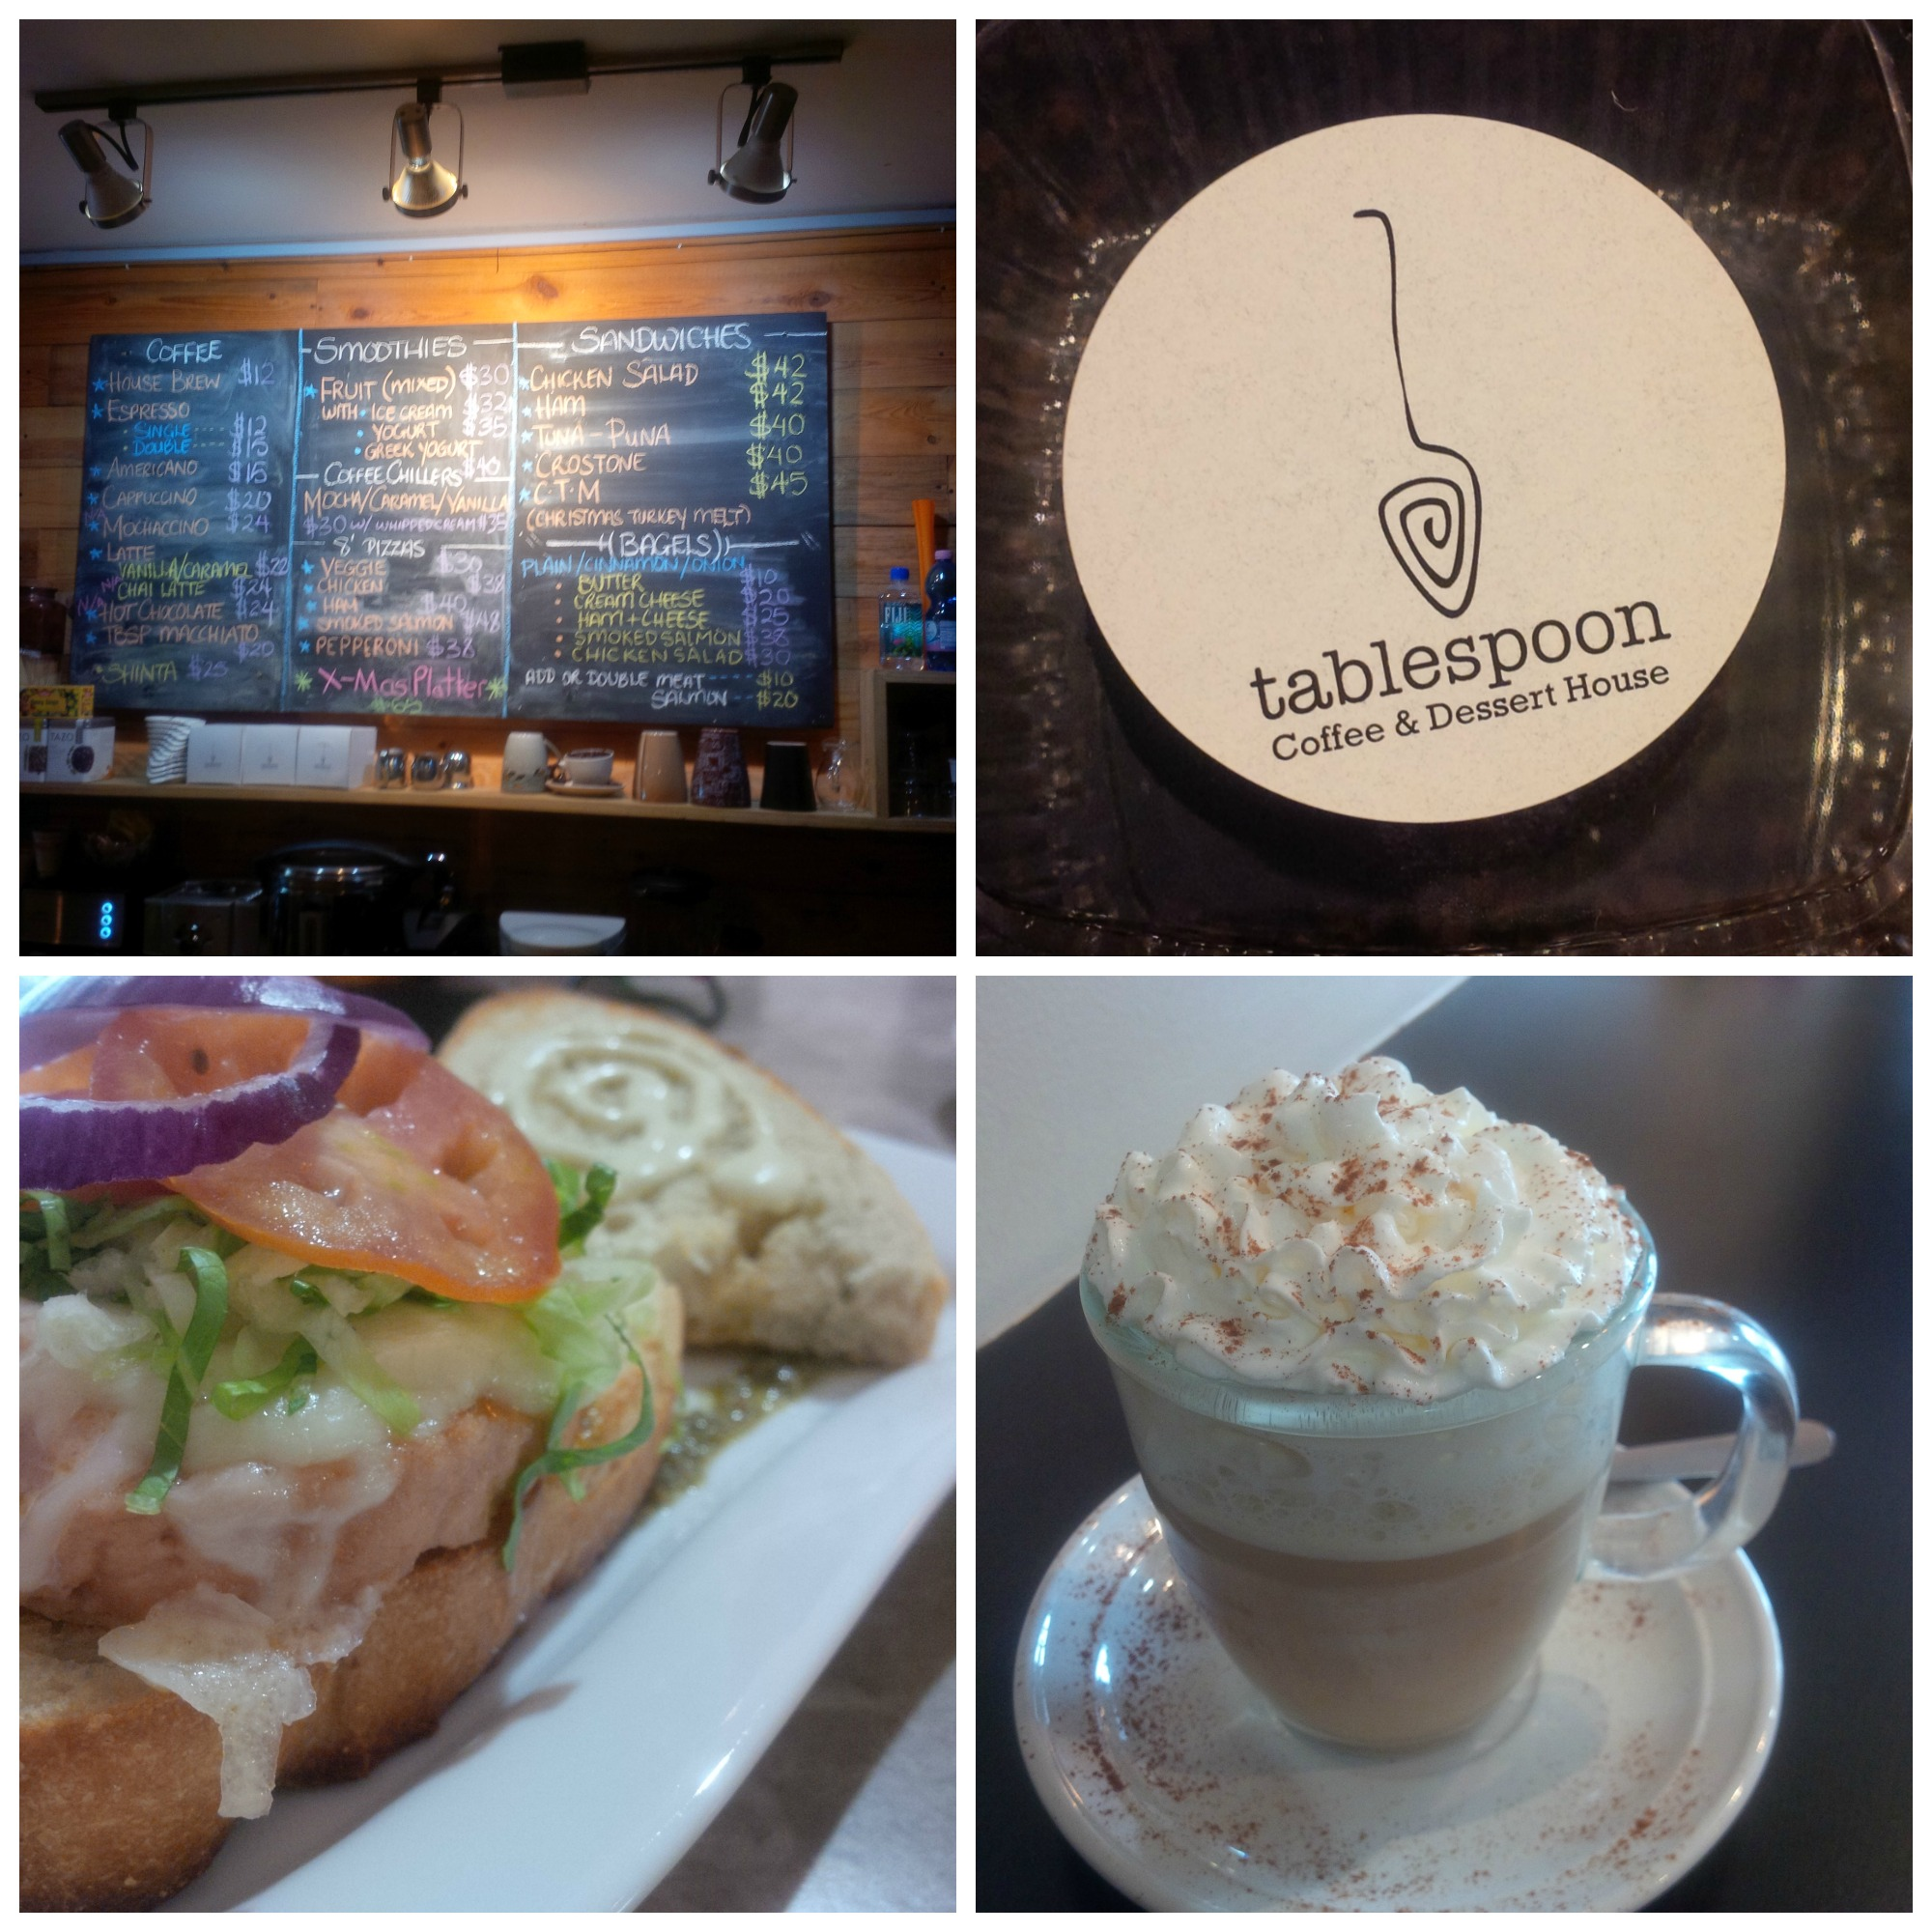 Tablespoon Coffee & Dessert House